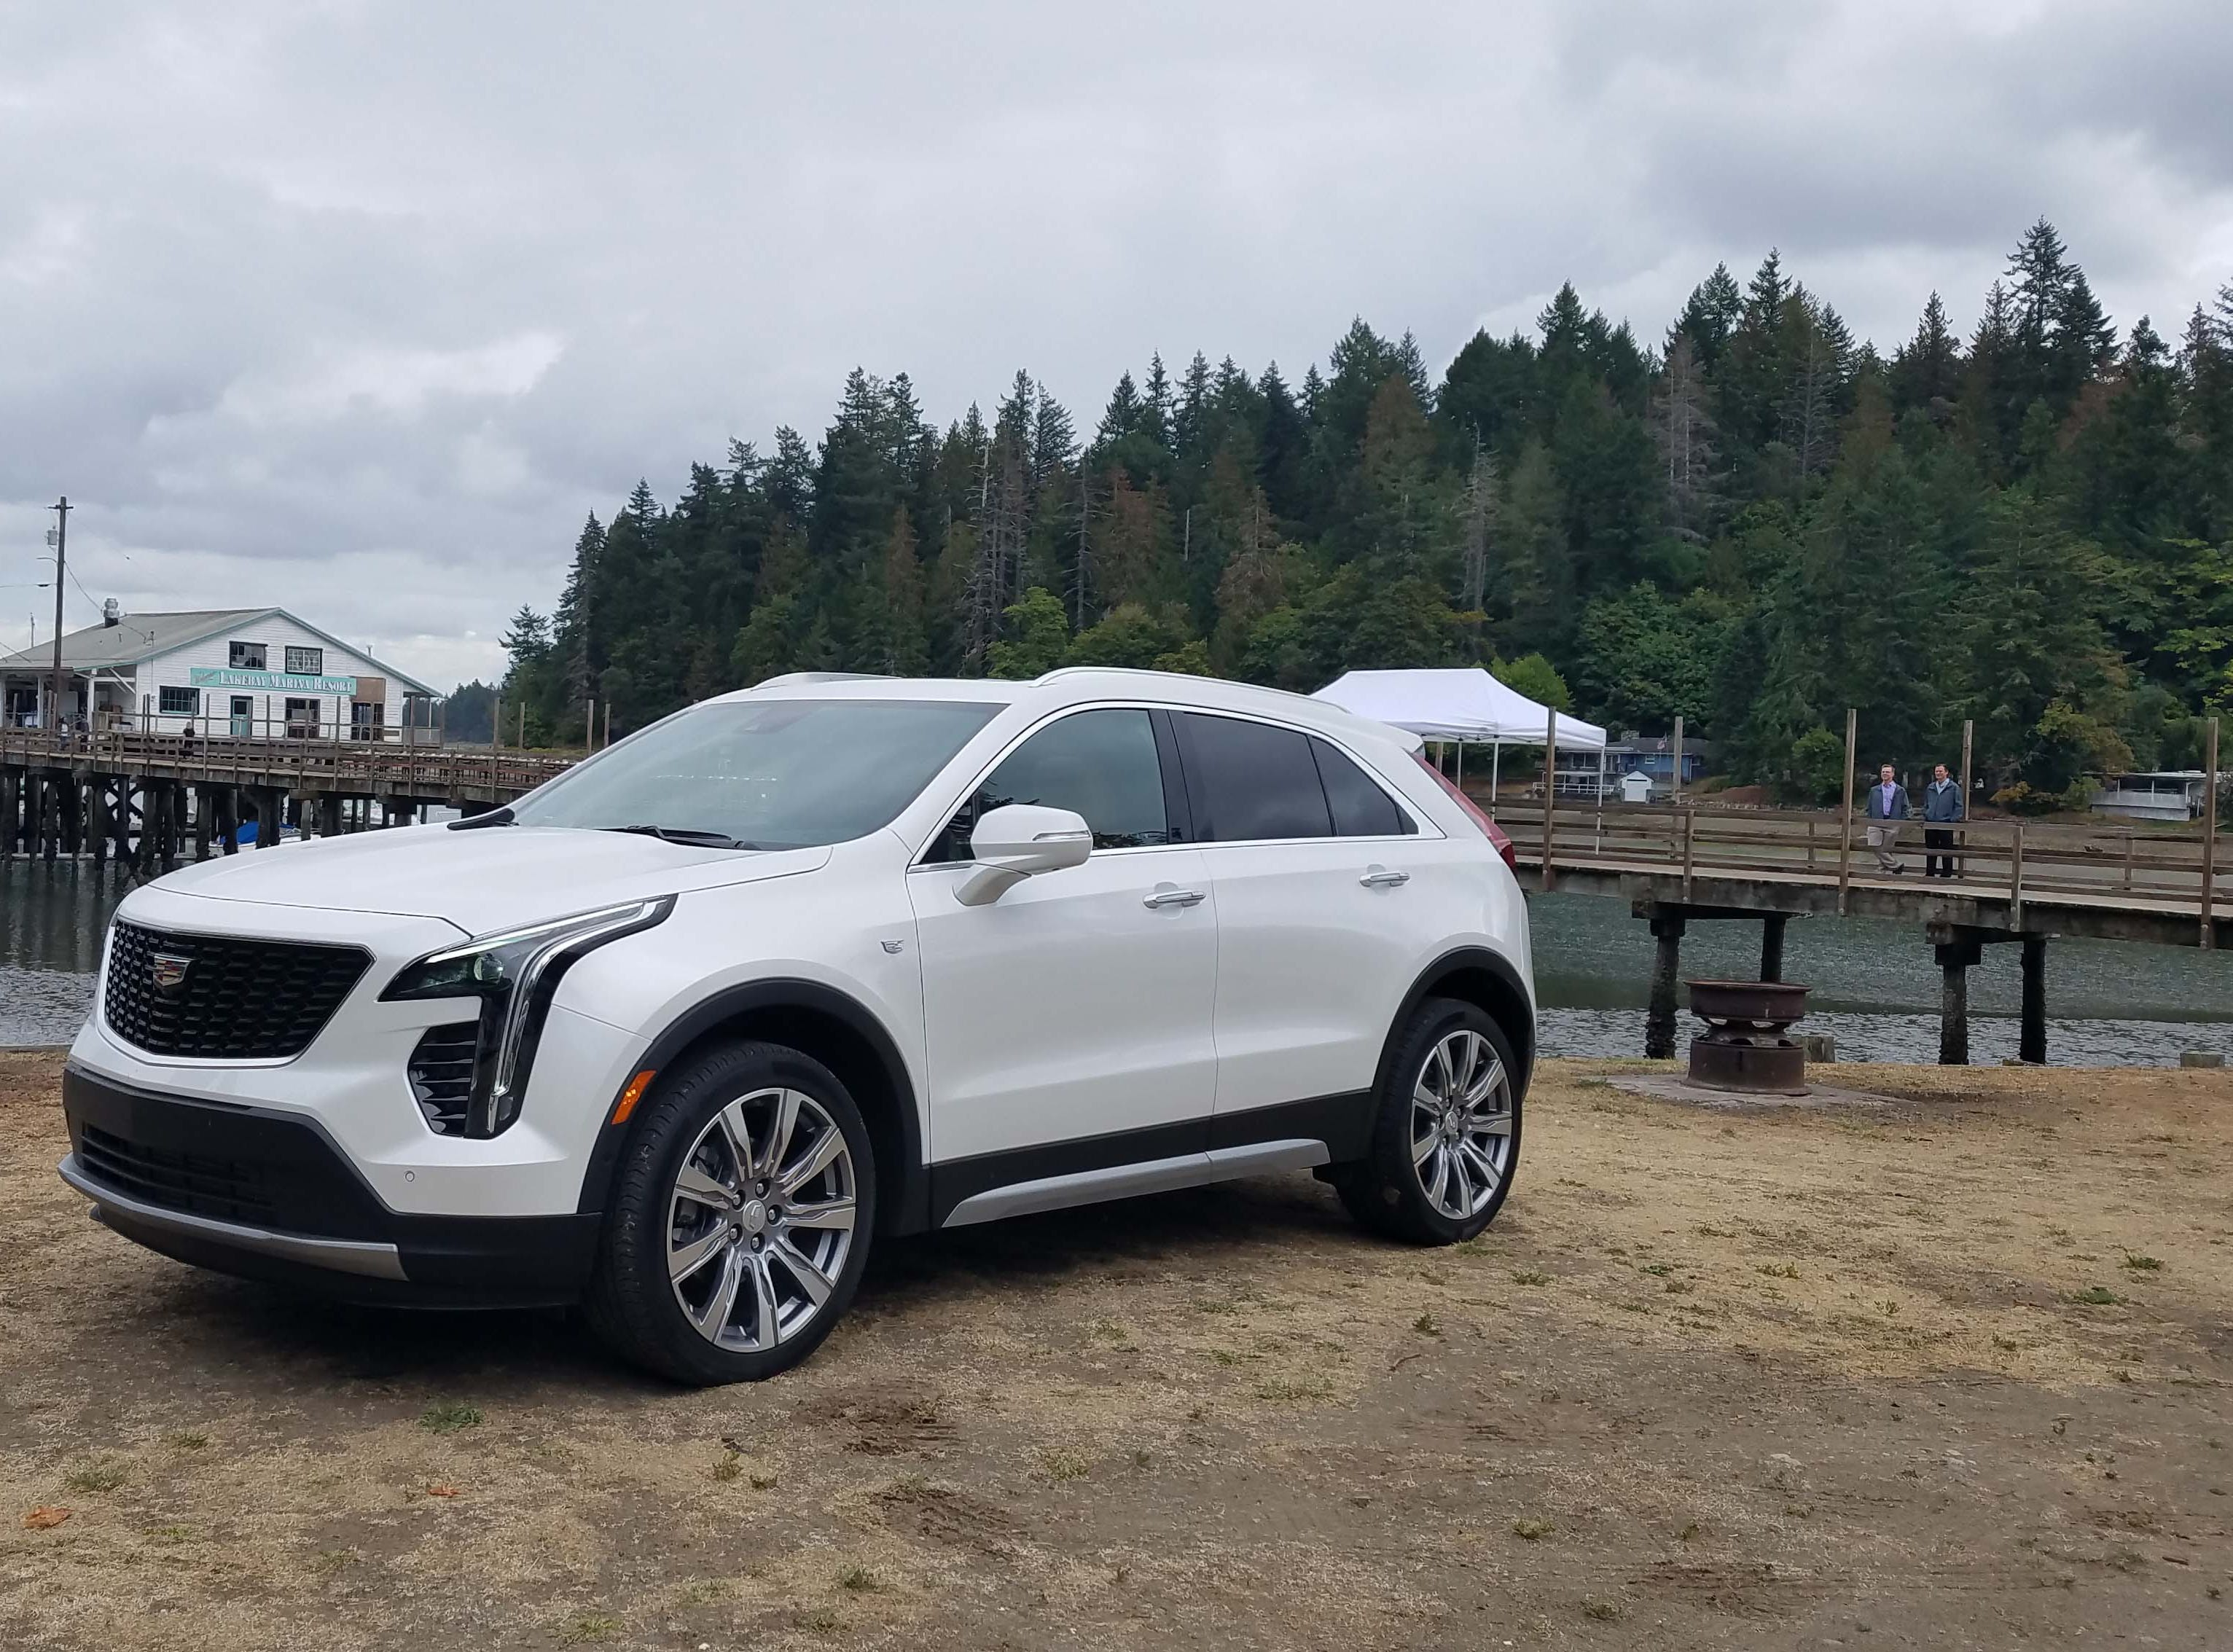 A white, 2019 Cadillac XT4 shows off the wee ute's tasteful styling cues at a dock near Bremerton, Washington.